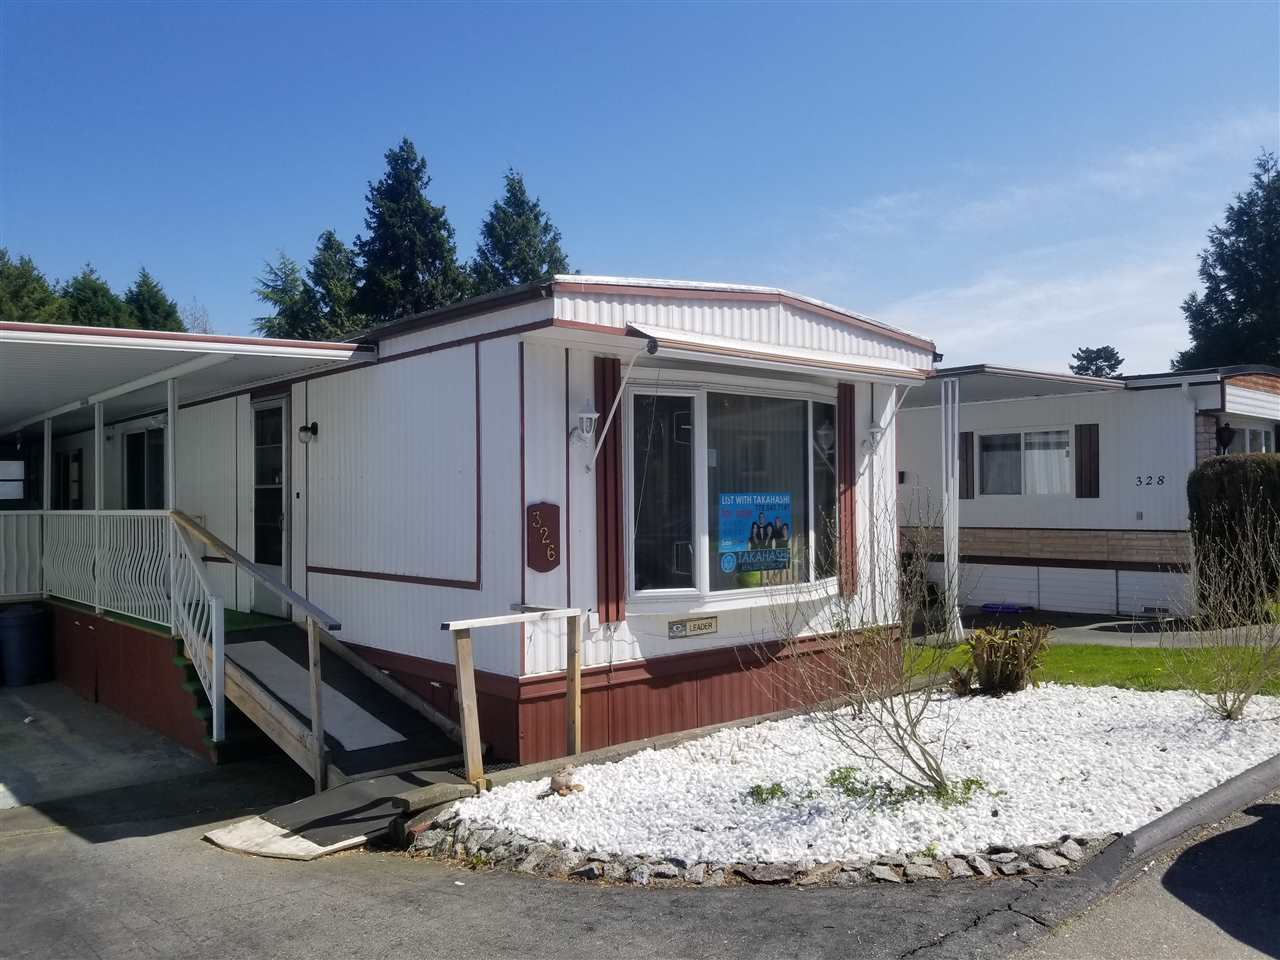 "Main Photo: 326 1840 160 Street in Surrey: King George Corridor Manufactured Home for sale in ""BREAKAWAY BAYS"" (South Surrey White Rock)  : MLS®# R2262141"